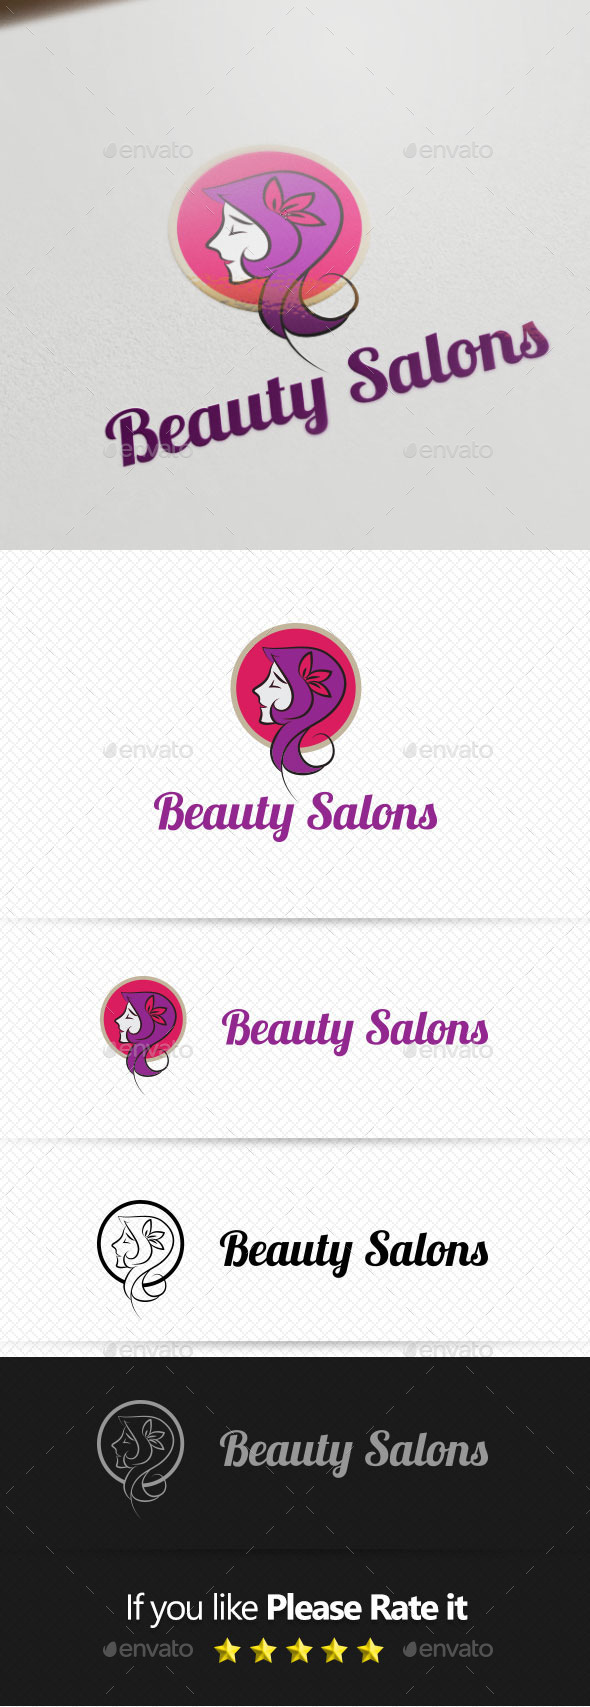 Beauty Salons Logo Template - Objects Logo Templates